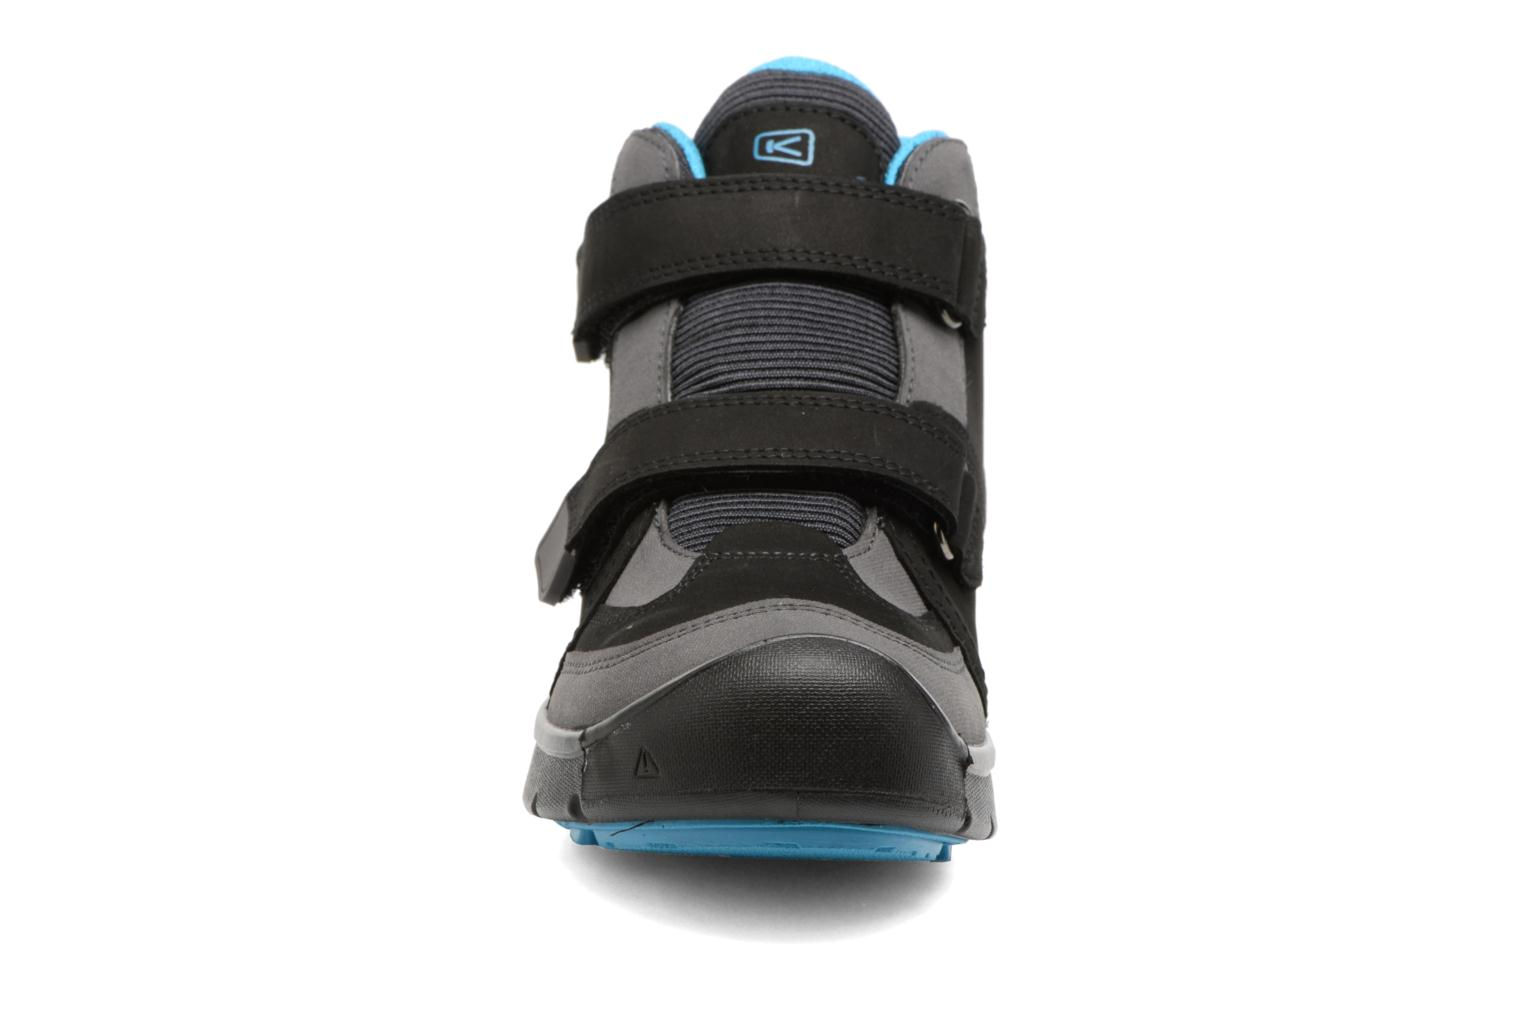 Hikeport Mid Strap Black/Blue Jewel